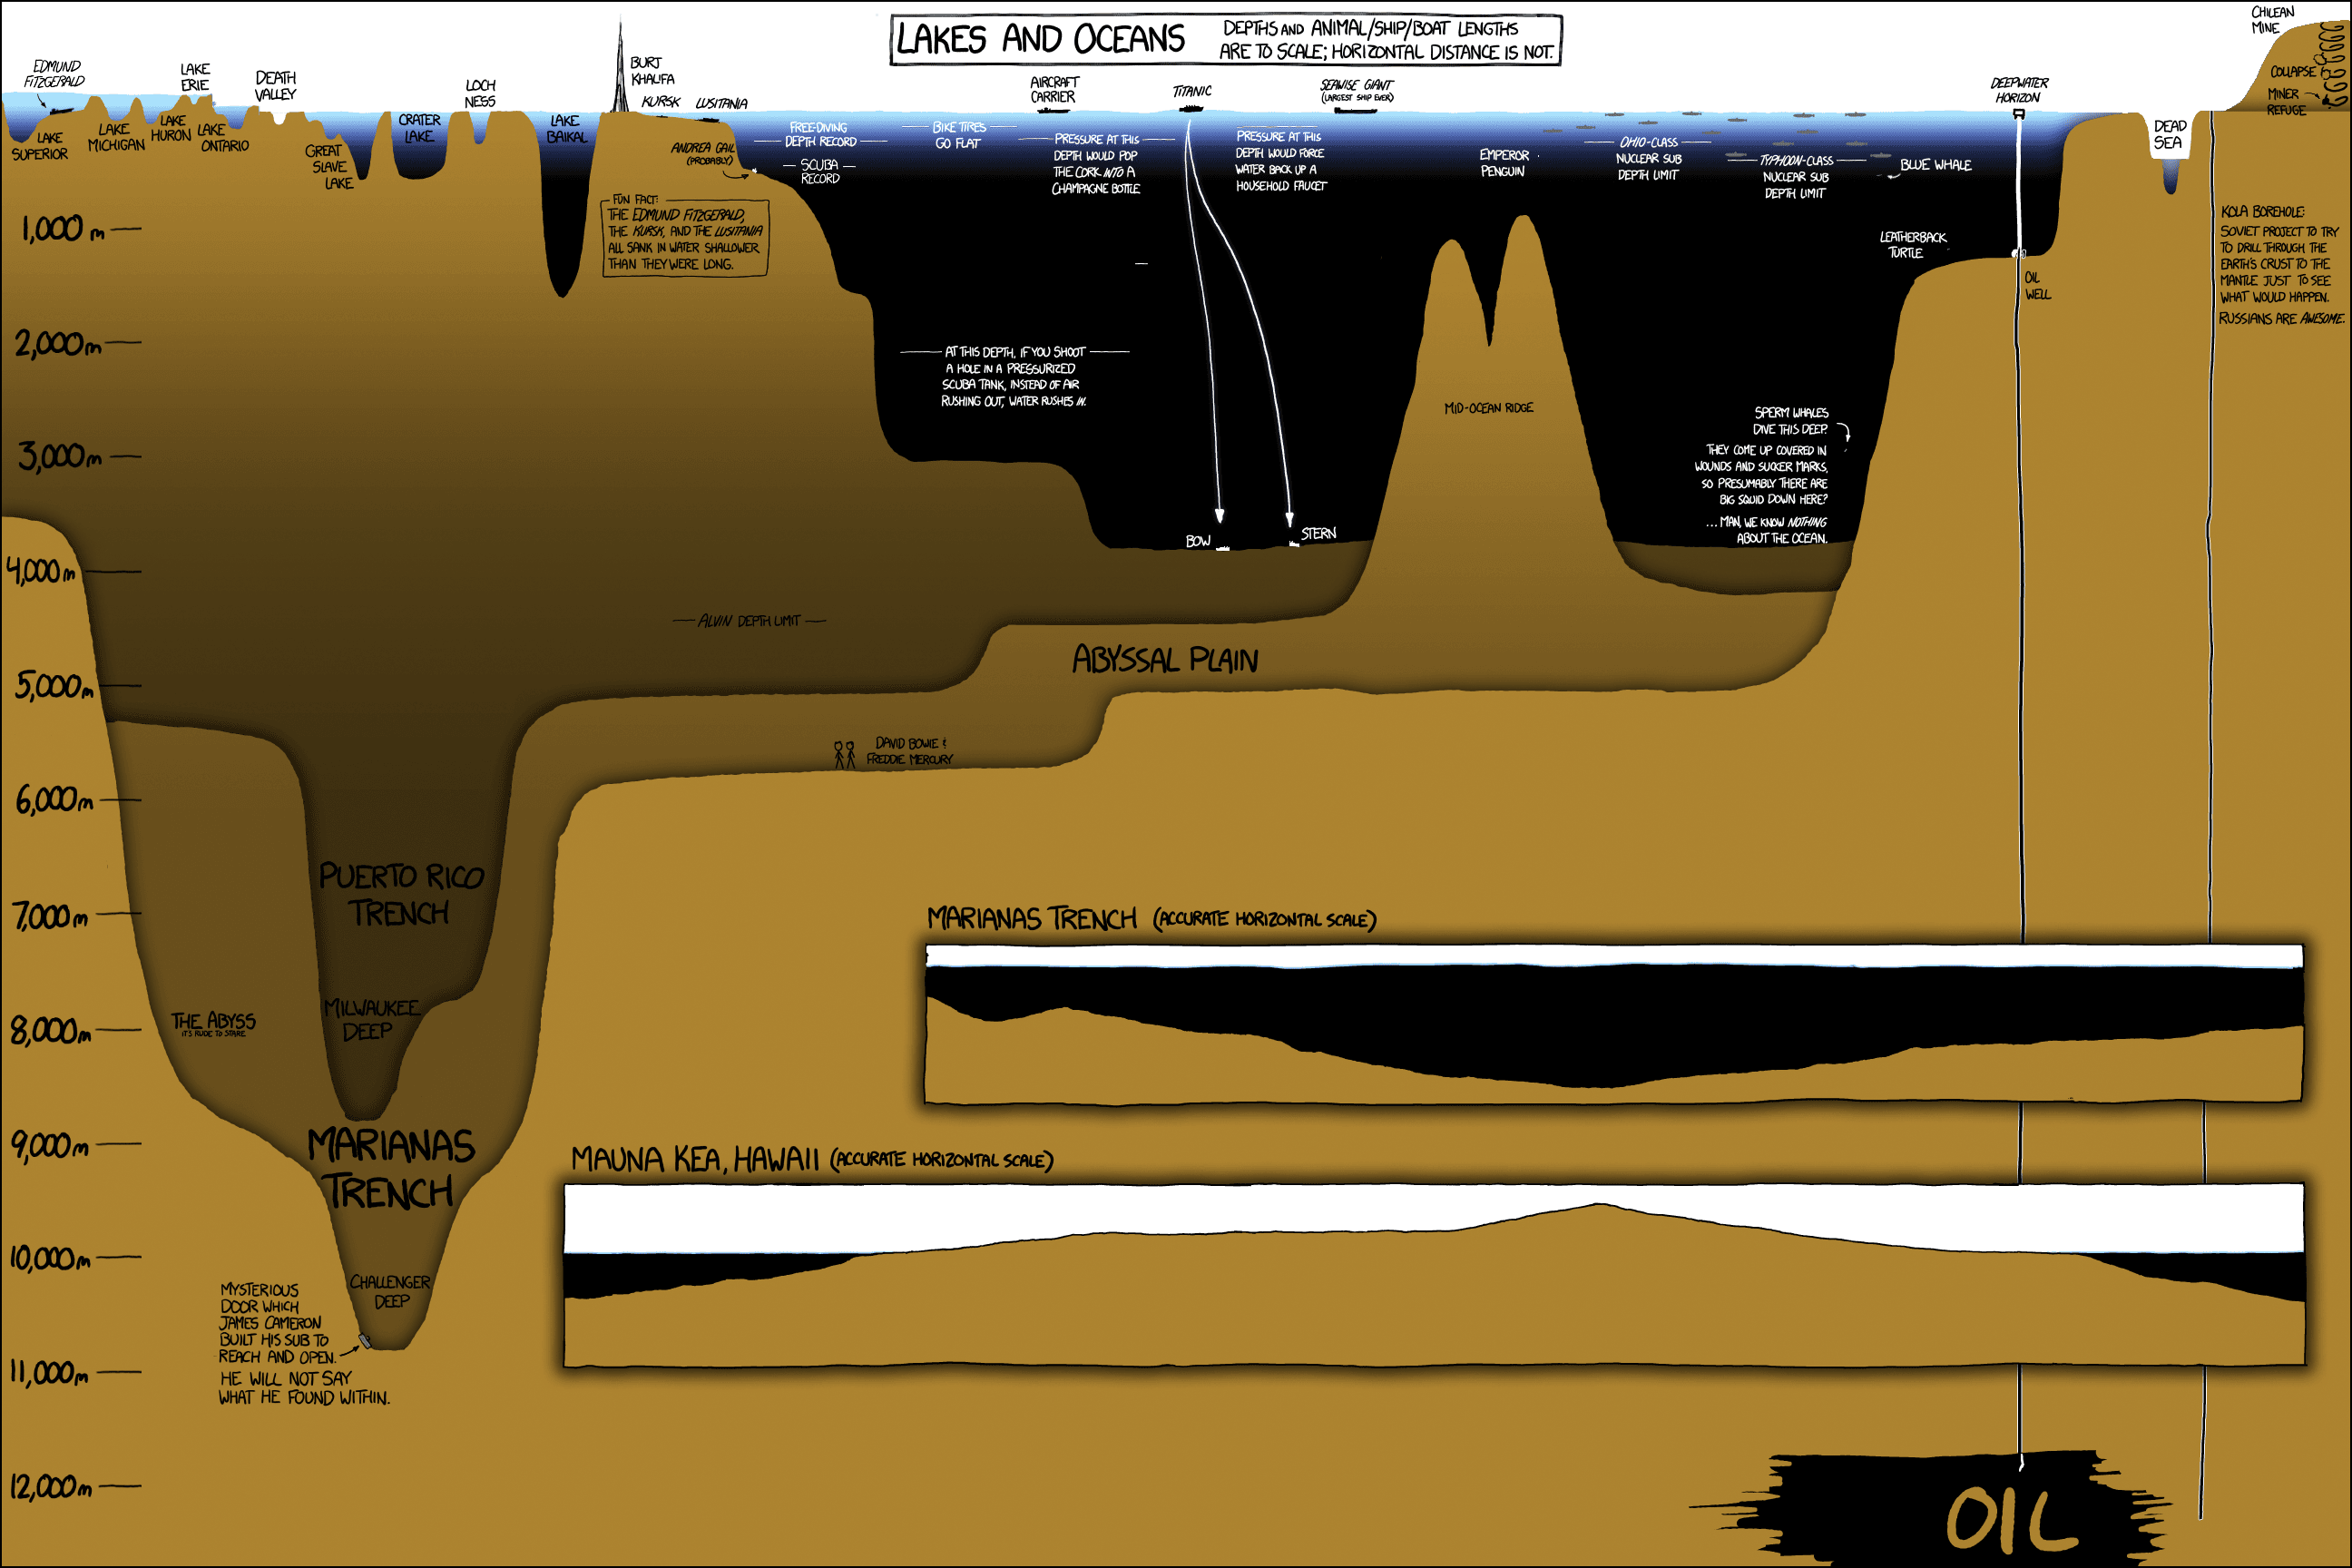 Oceans, Lakes, And Drill Holes